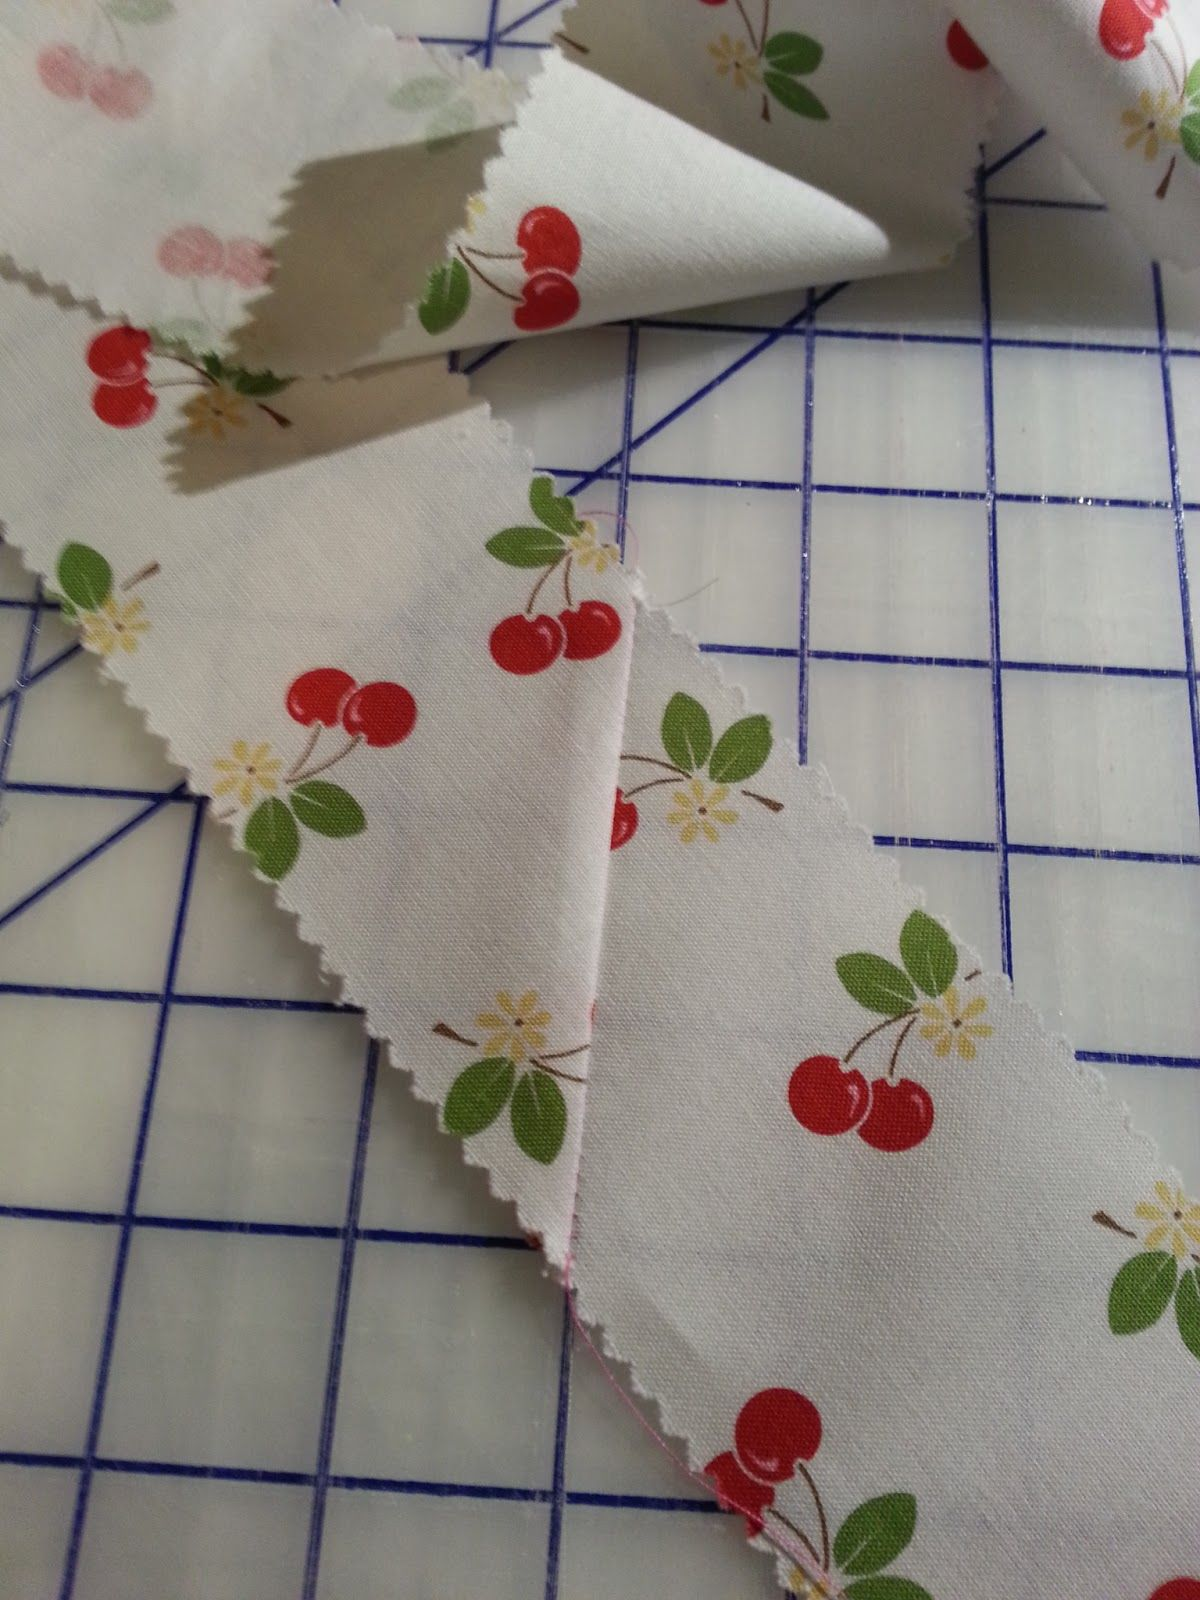 Quilting Tutorials and Fabric Creations | Quilting In The Rain: Binding & Blind Stitching Tutorial